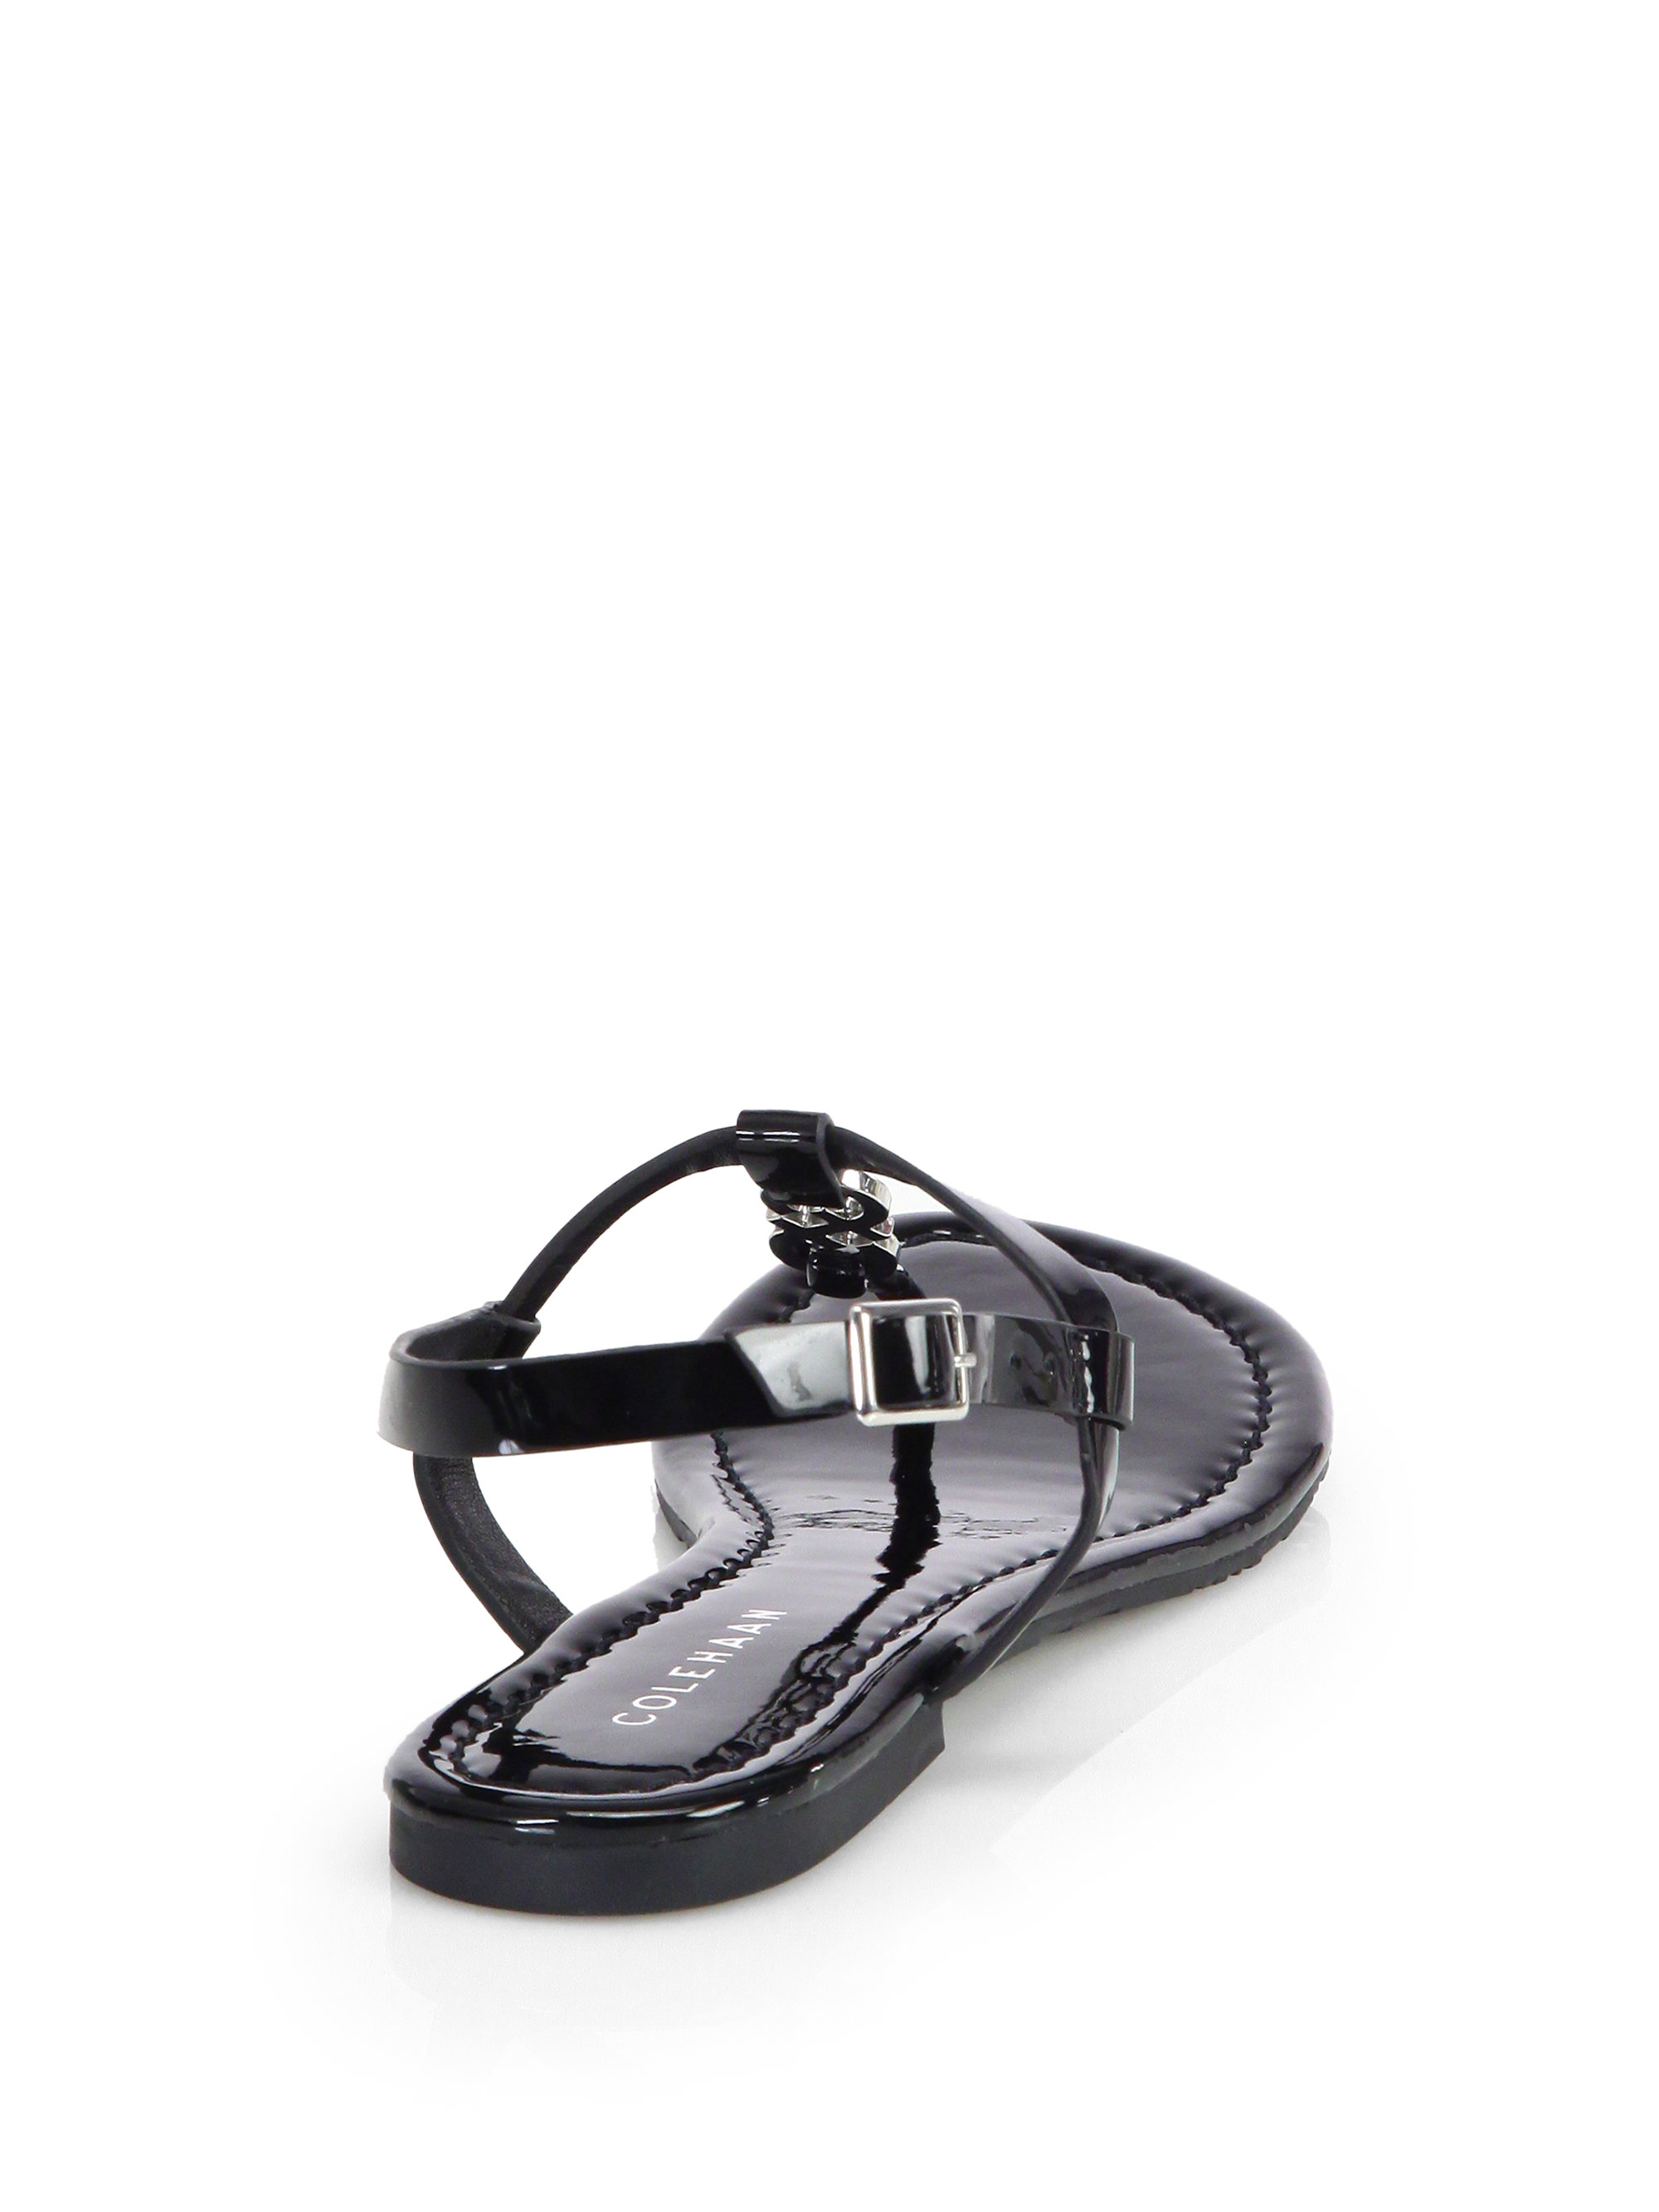 86109a81d0eeaa Lyst - Cole Haan Ally Patent Leather Thong Sandals in Black